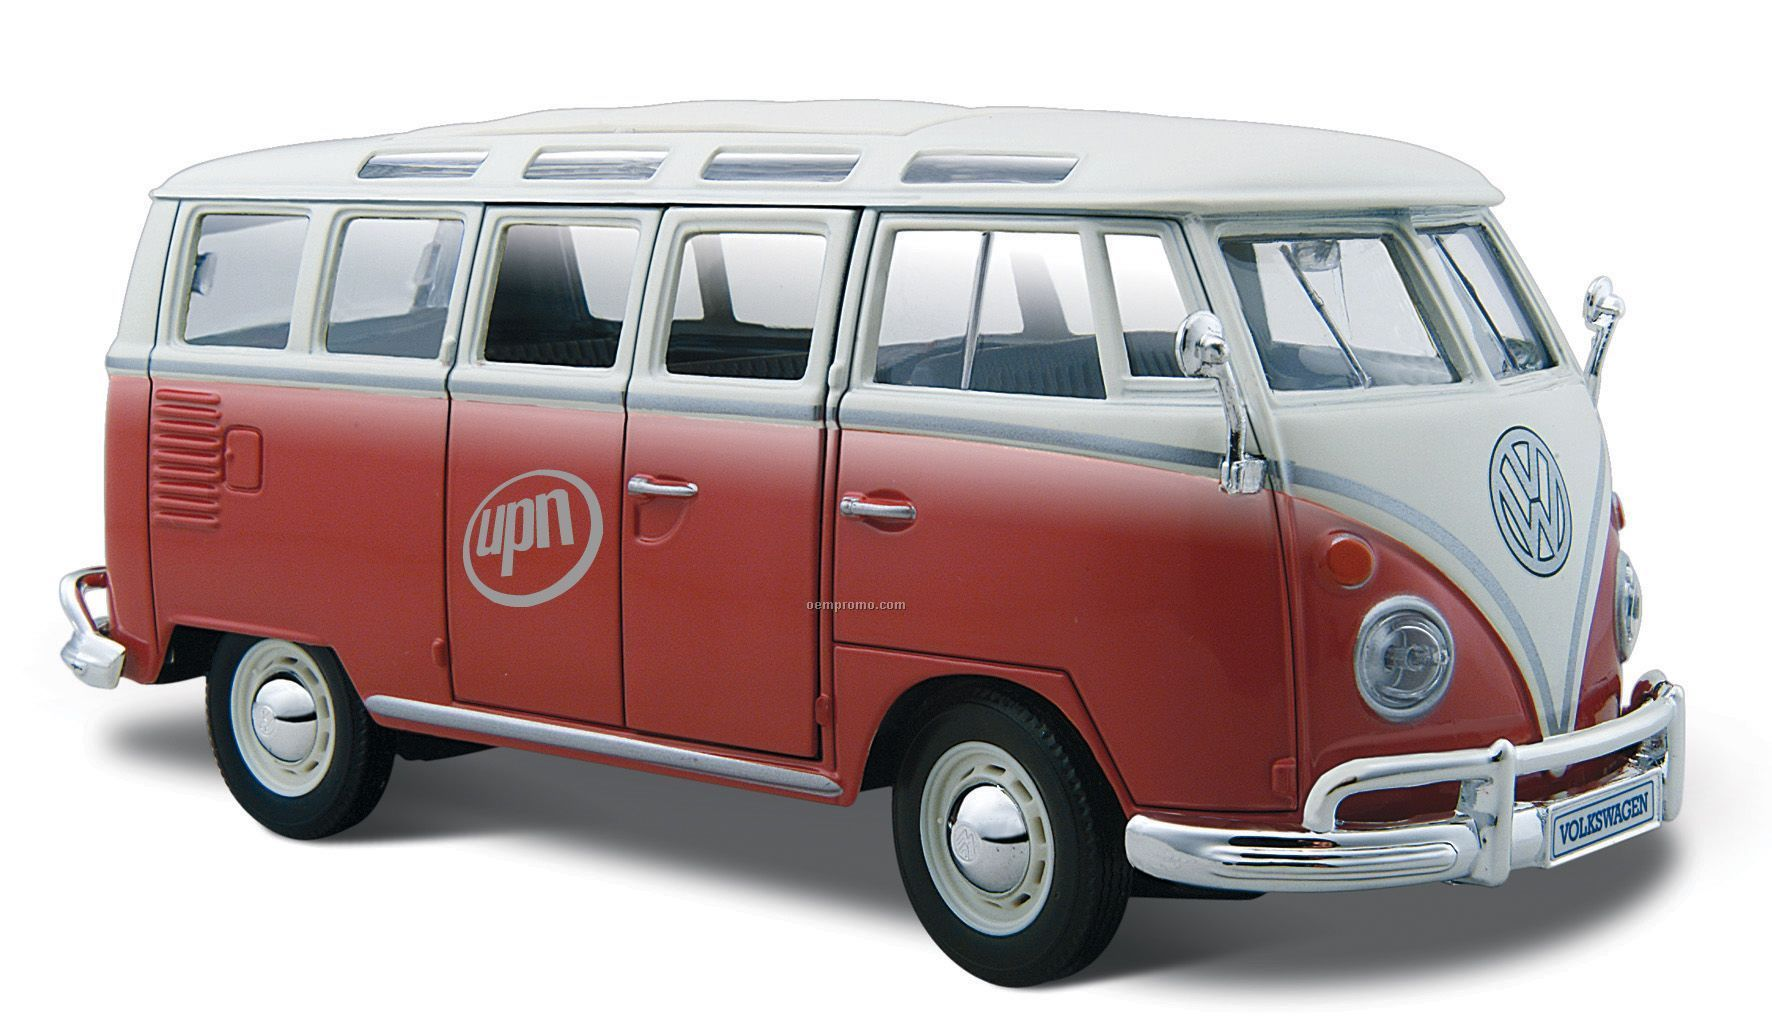 7 x2 1 2 x3 red white vw samba bus die cast replica car. Black Bedroom Furniture Sets. Home Design Ideas